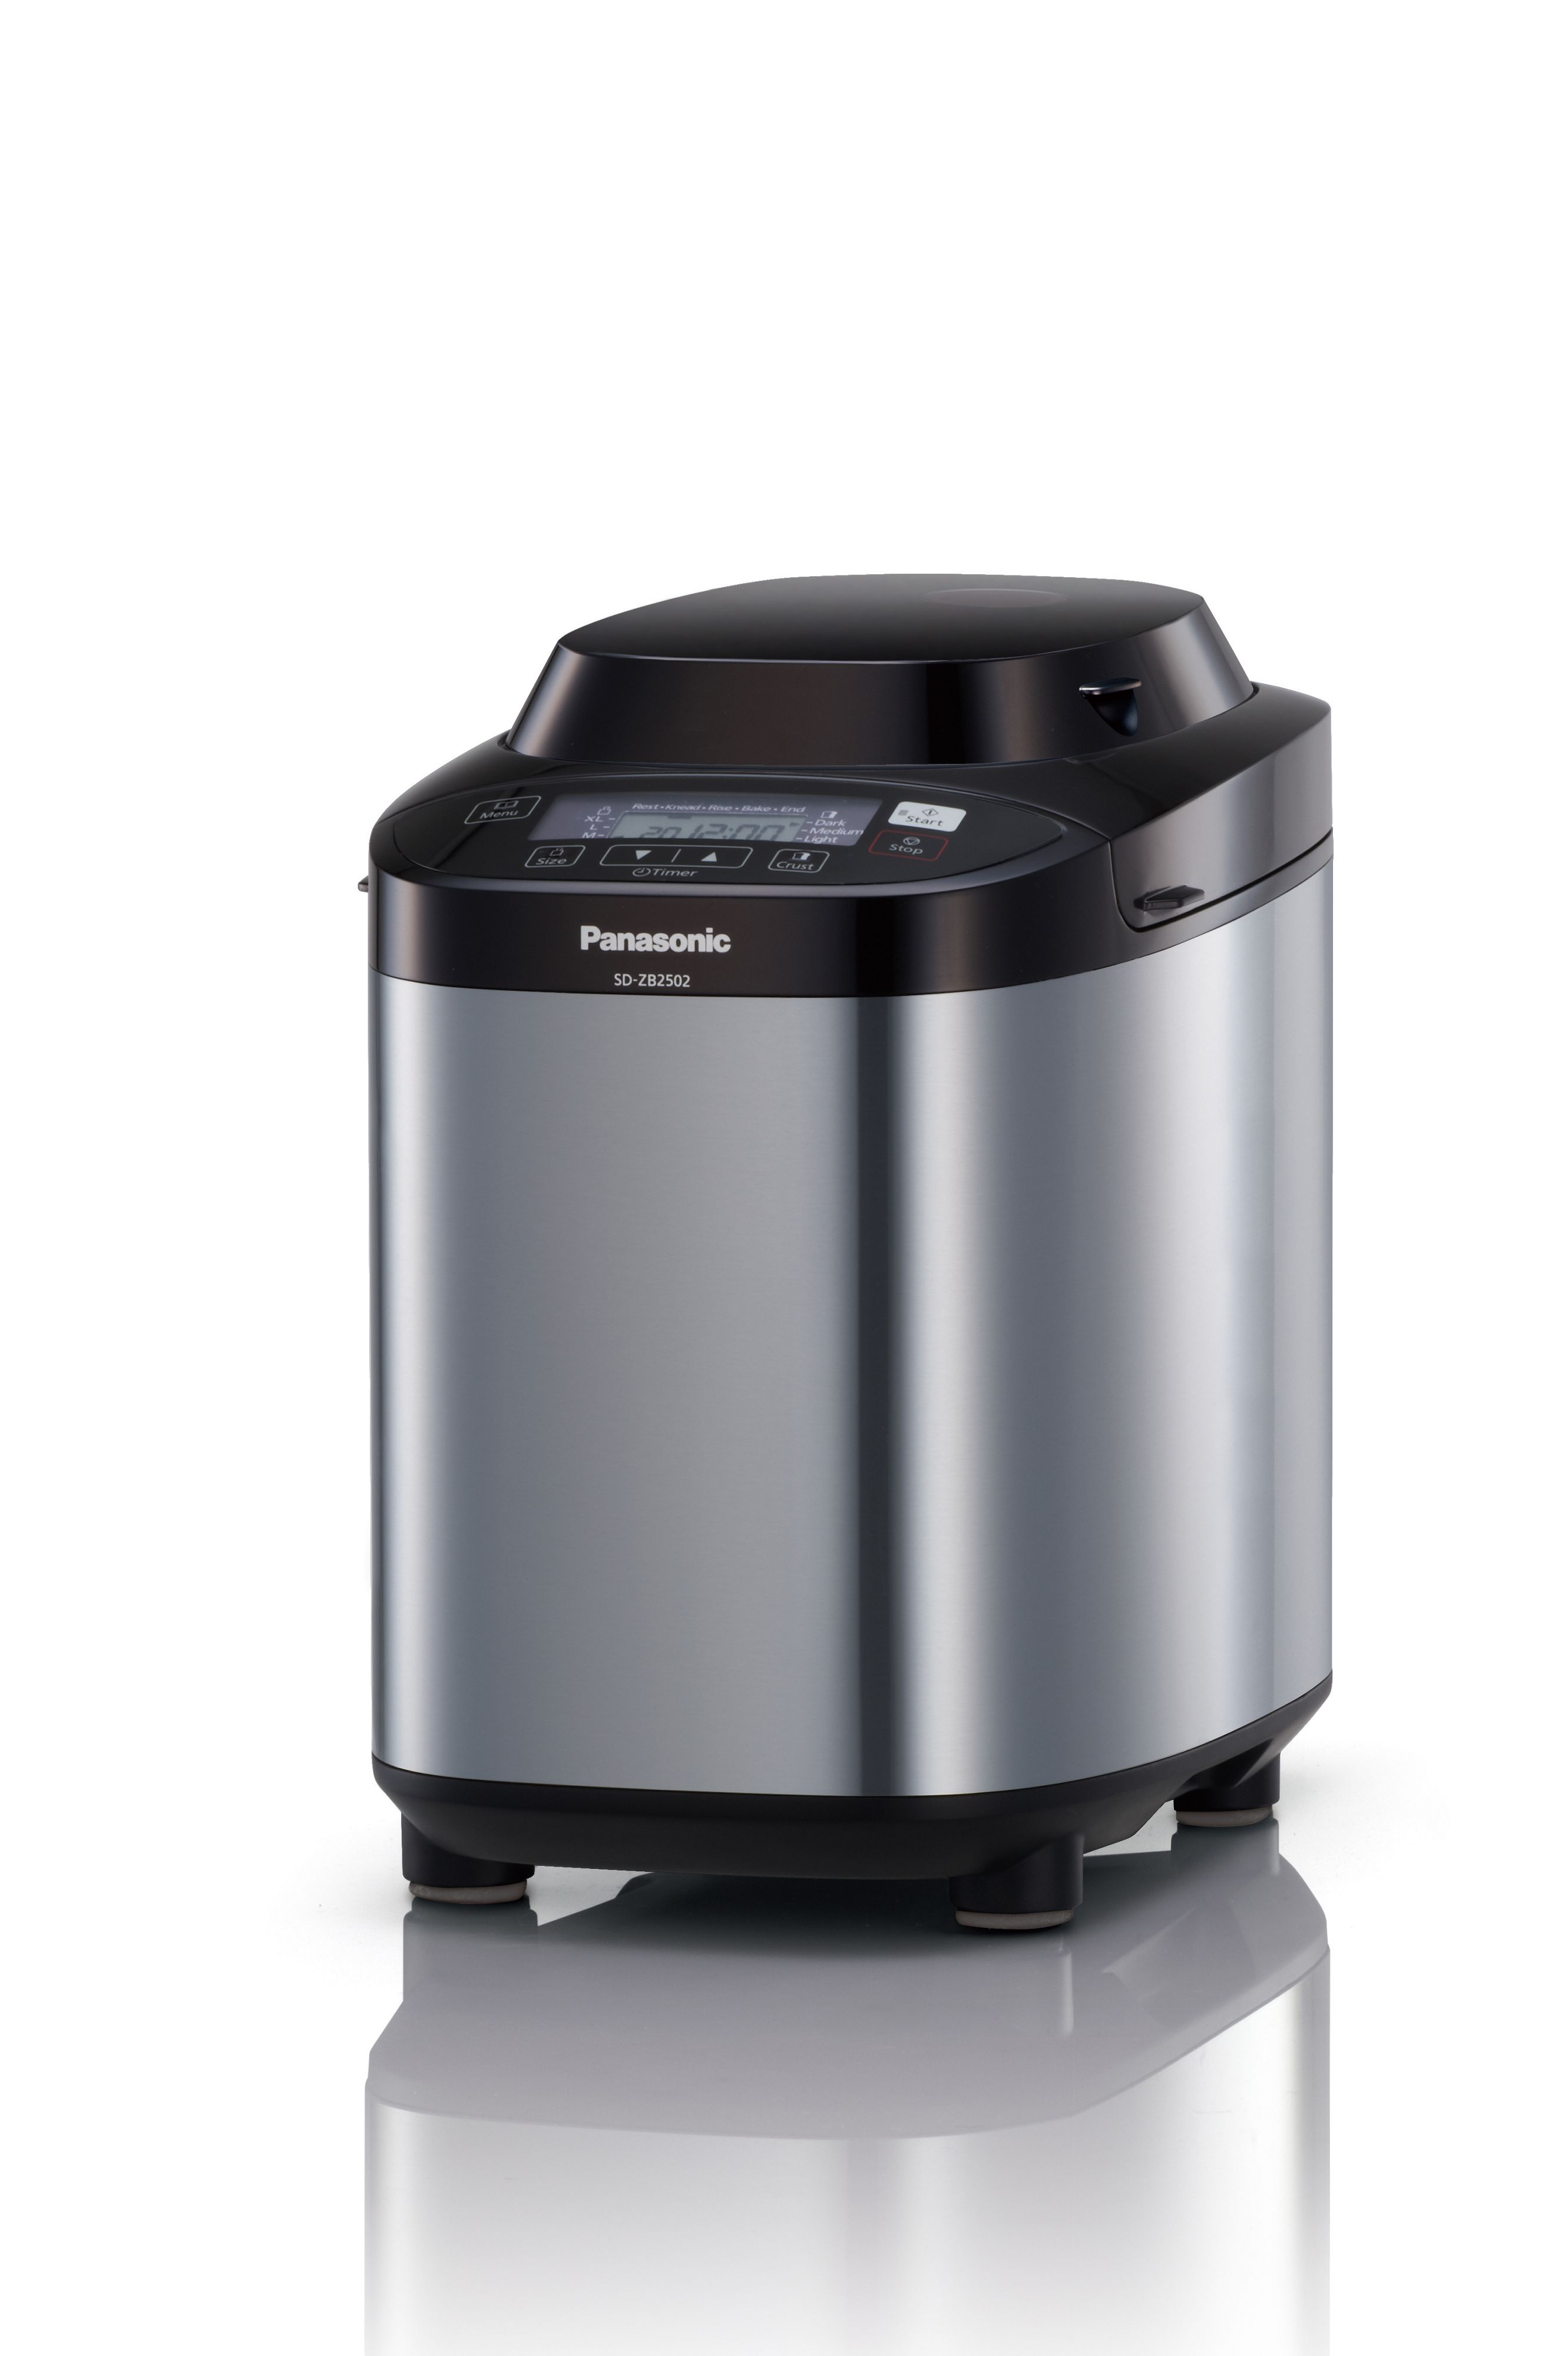 Panasonic bread maker stainless steel